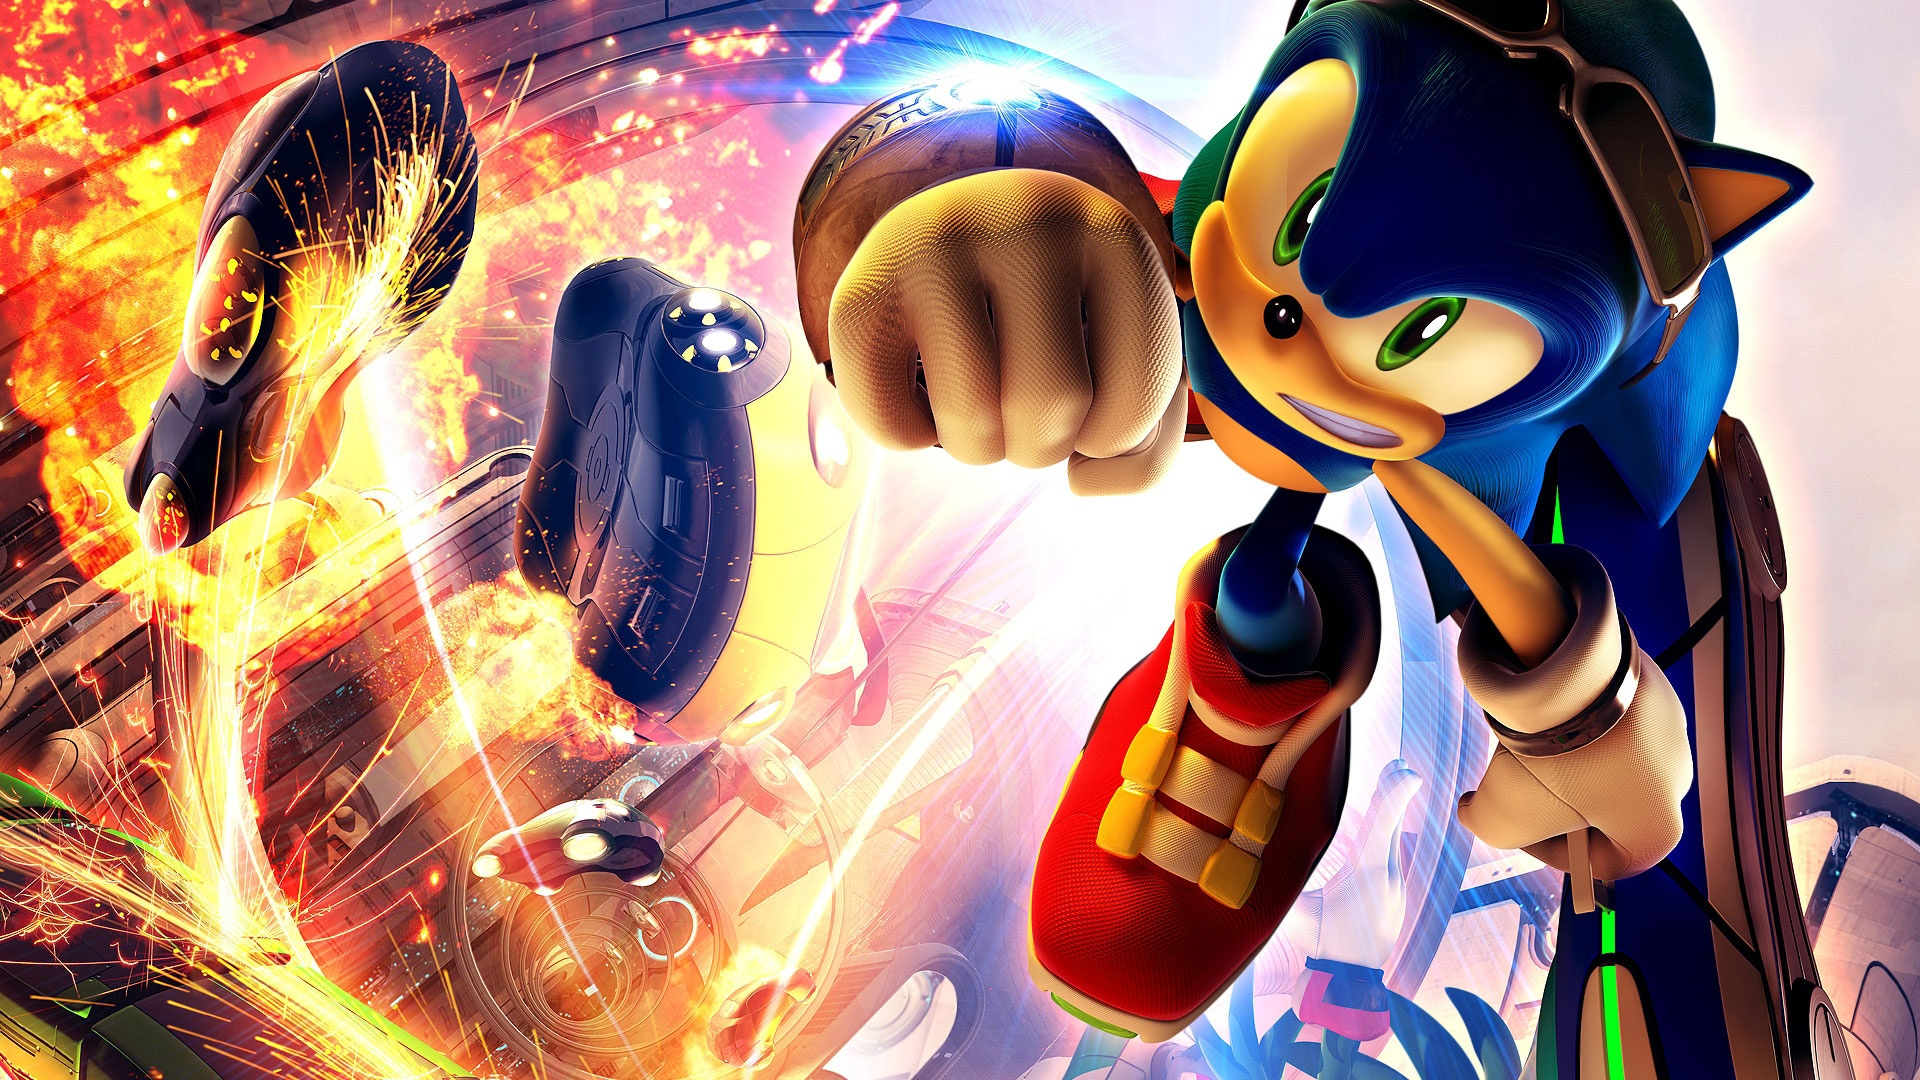 Riders Game Wallpapers HD wallpapers   Sonic Riders Game Wallpapers 1920x1080